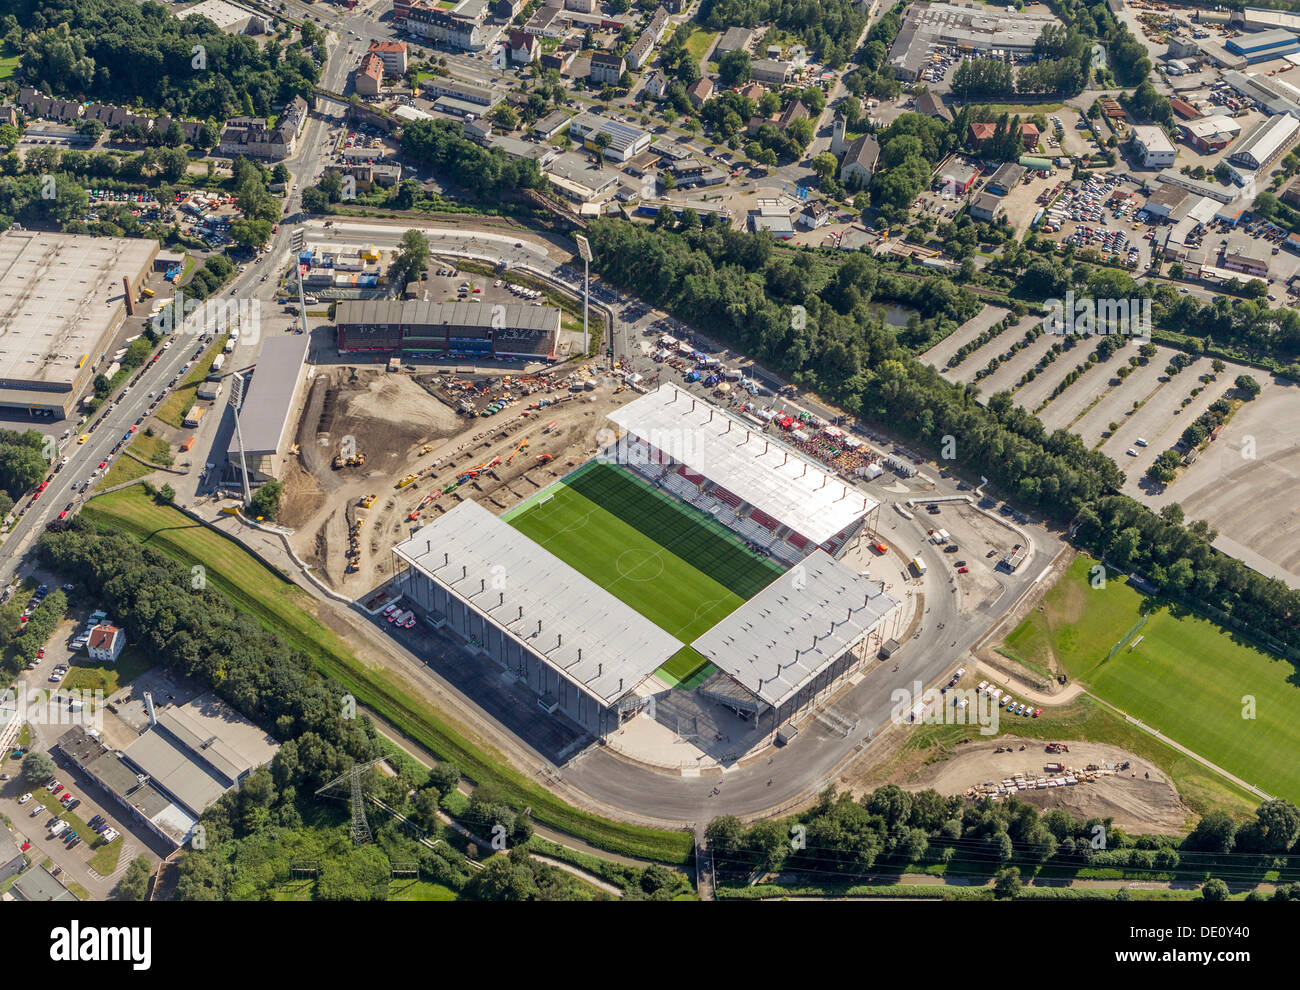 Aerial view, the newly opened stadium in Essen, Ruhr Area, North Rhine-Westphalia - Stock Image